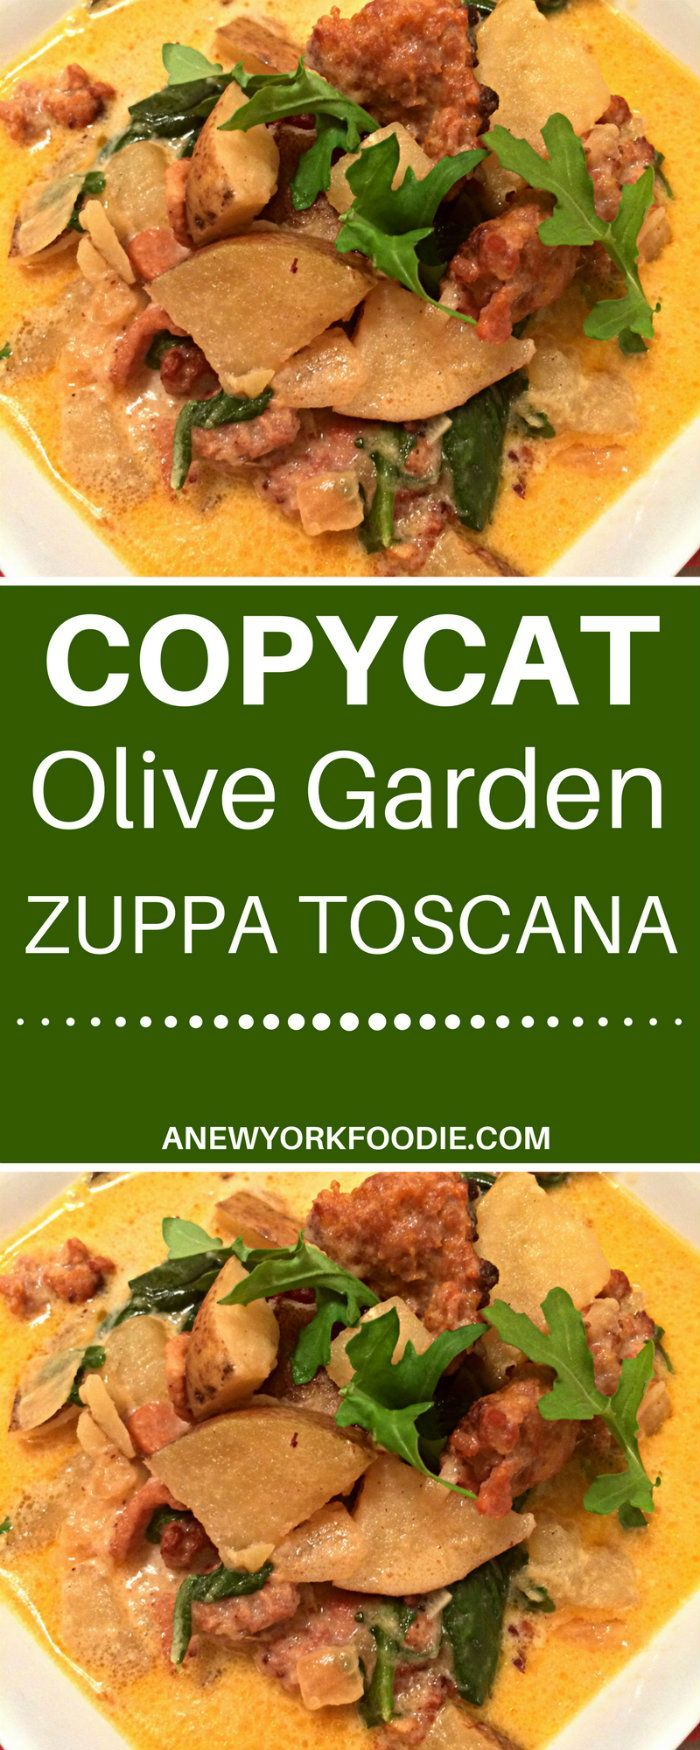 This Copycat Olive Garden Zuppa Toscana Soup is so rich and delicious and tastes so much better than the original! #soups #italianfood #recipes